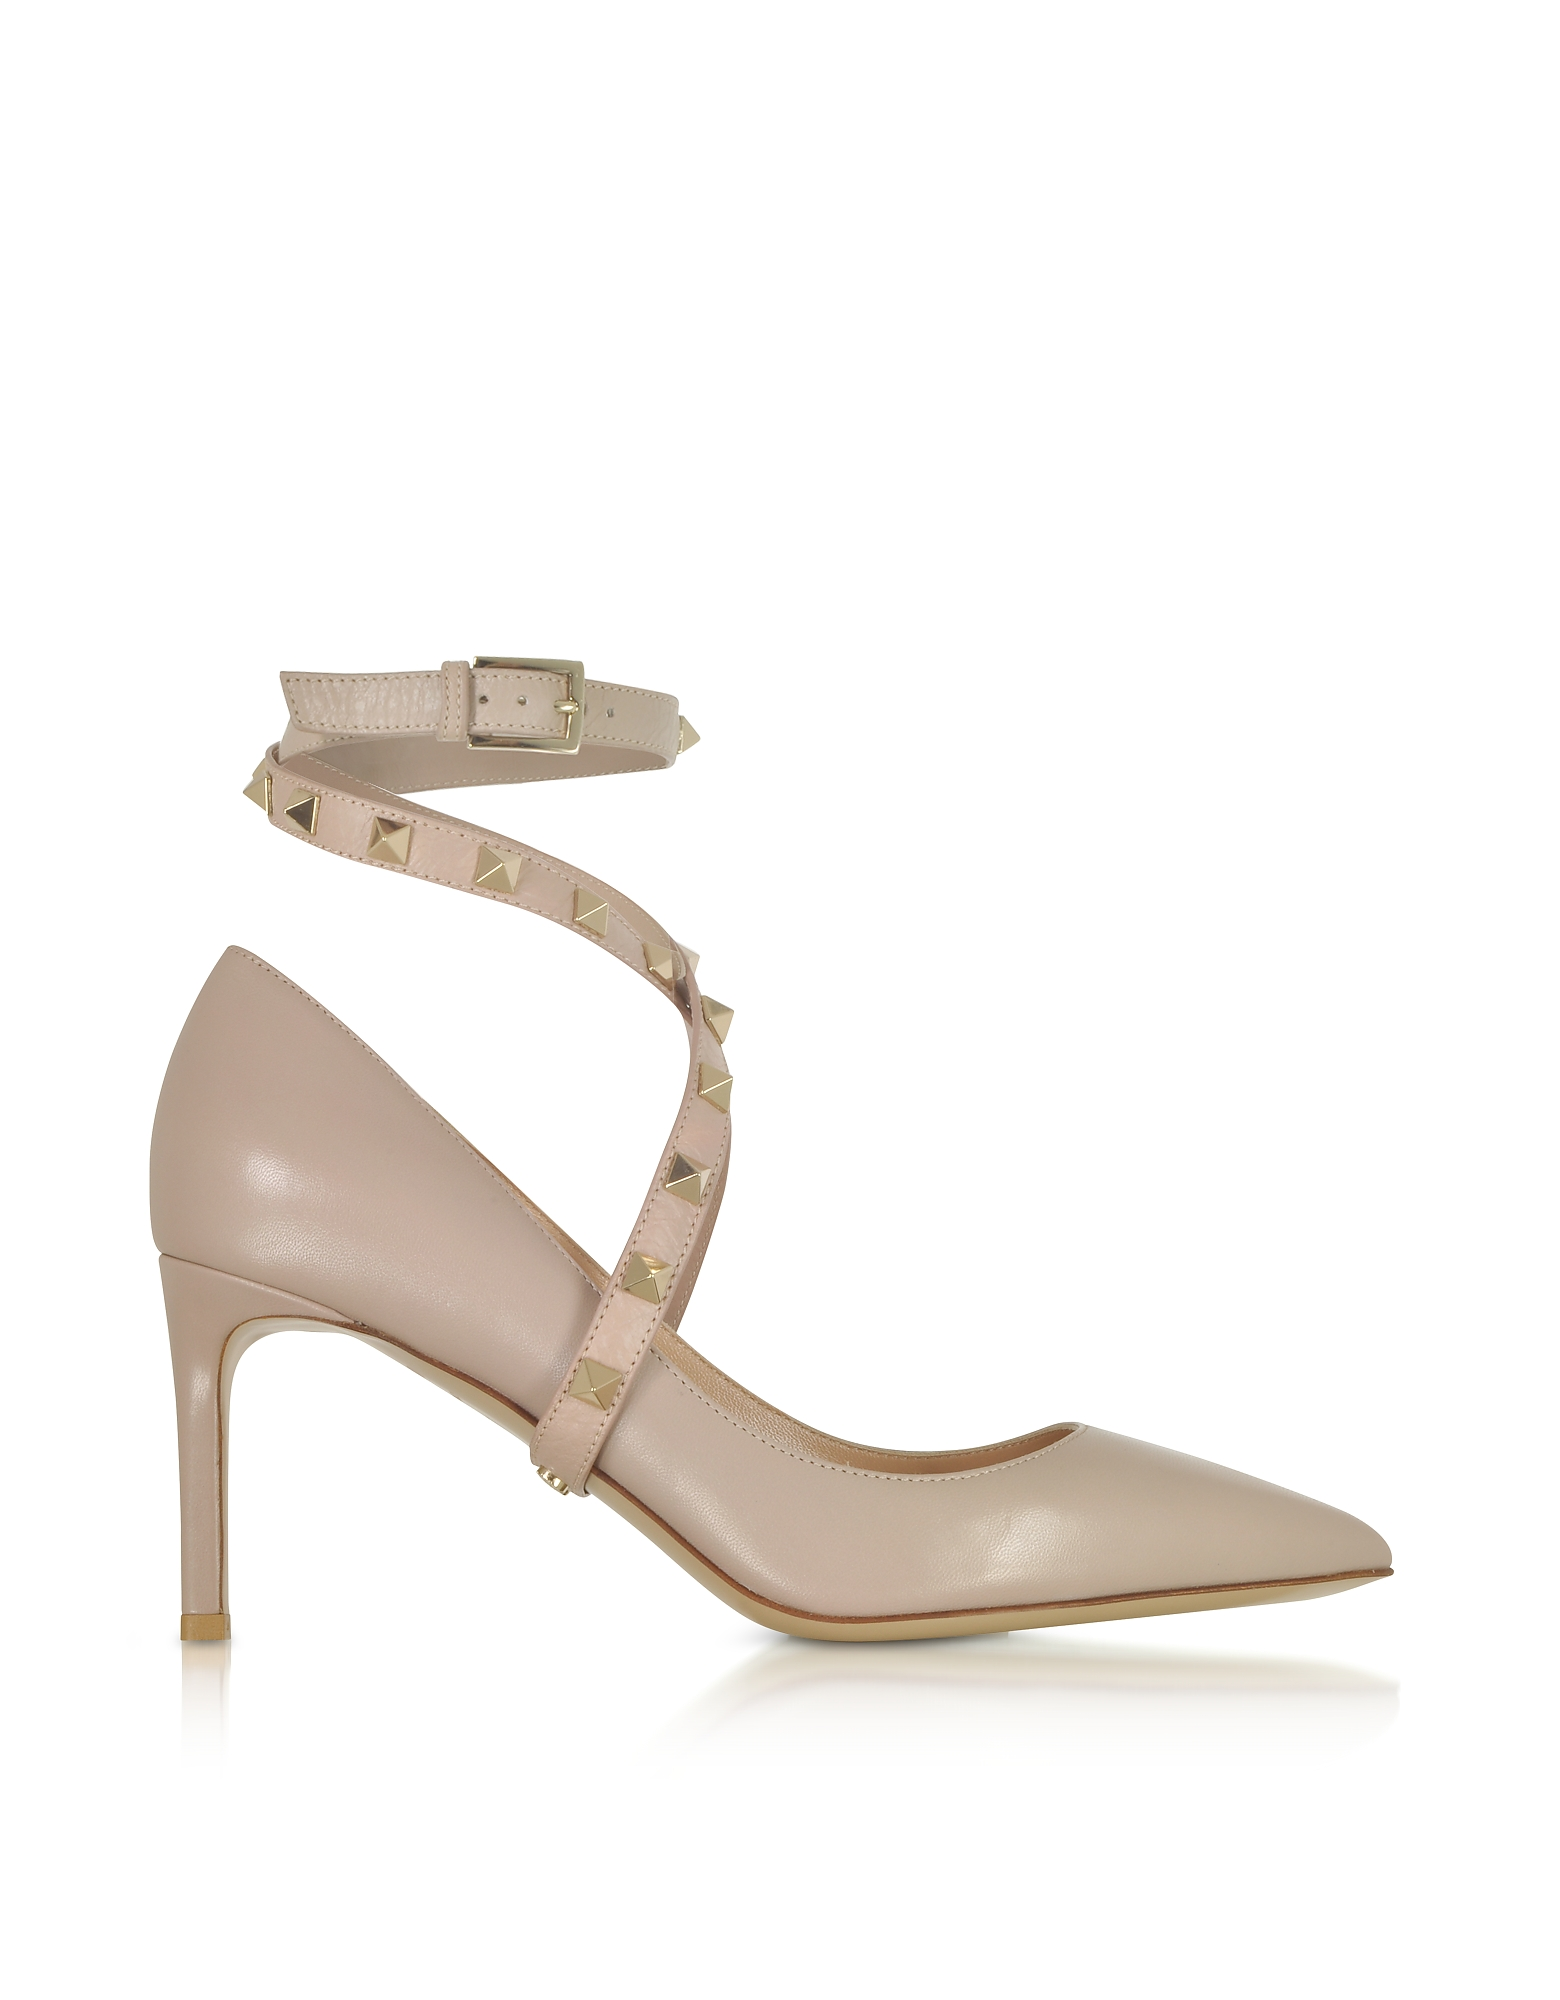 Valentino Shoes, Powder Pink Studwrap Pumps